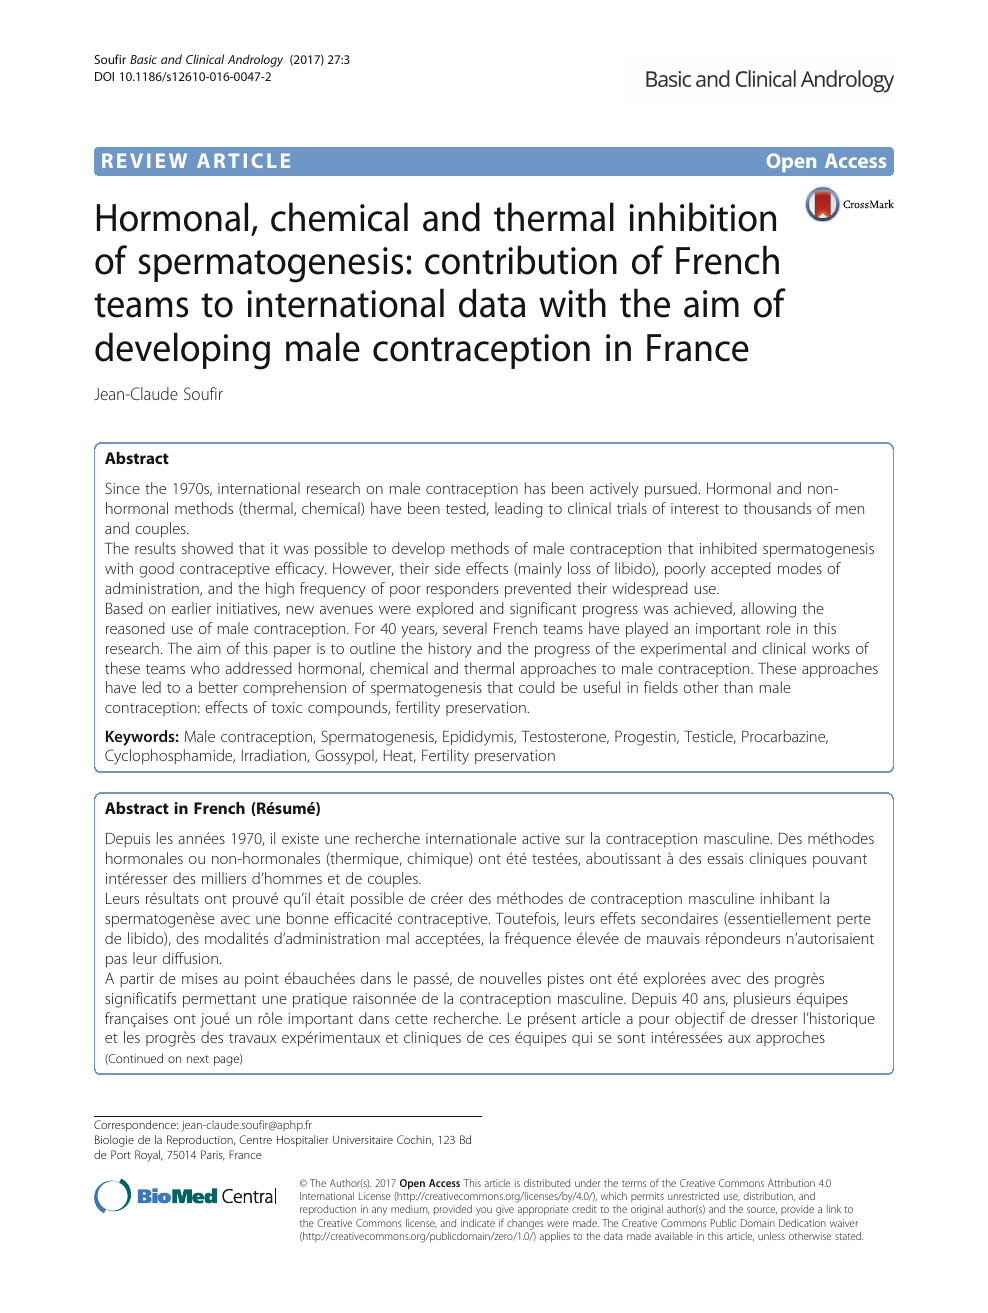 Hormonal, chemical and thermal inhibition of spermatogenesis